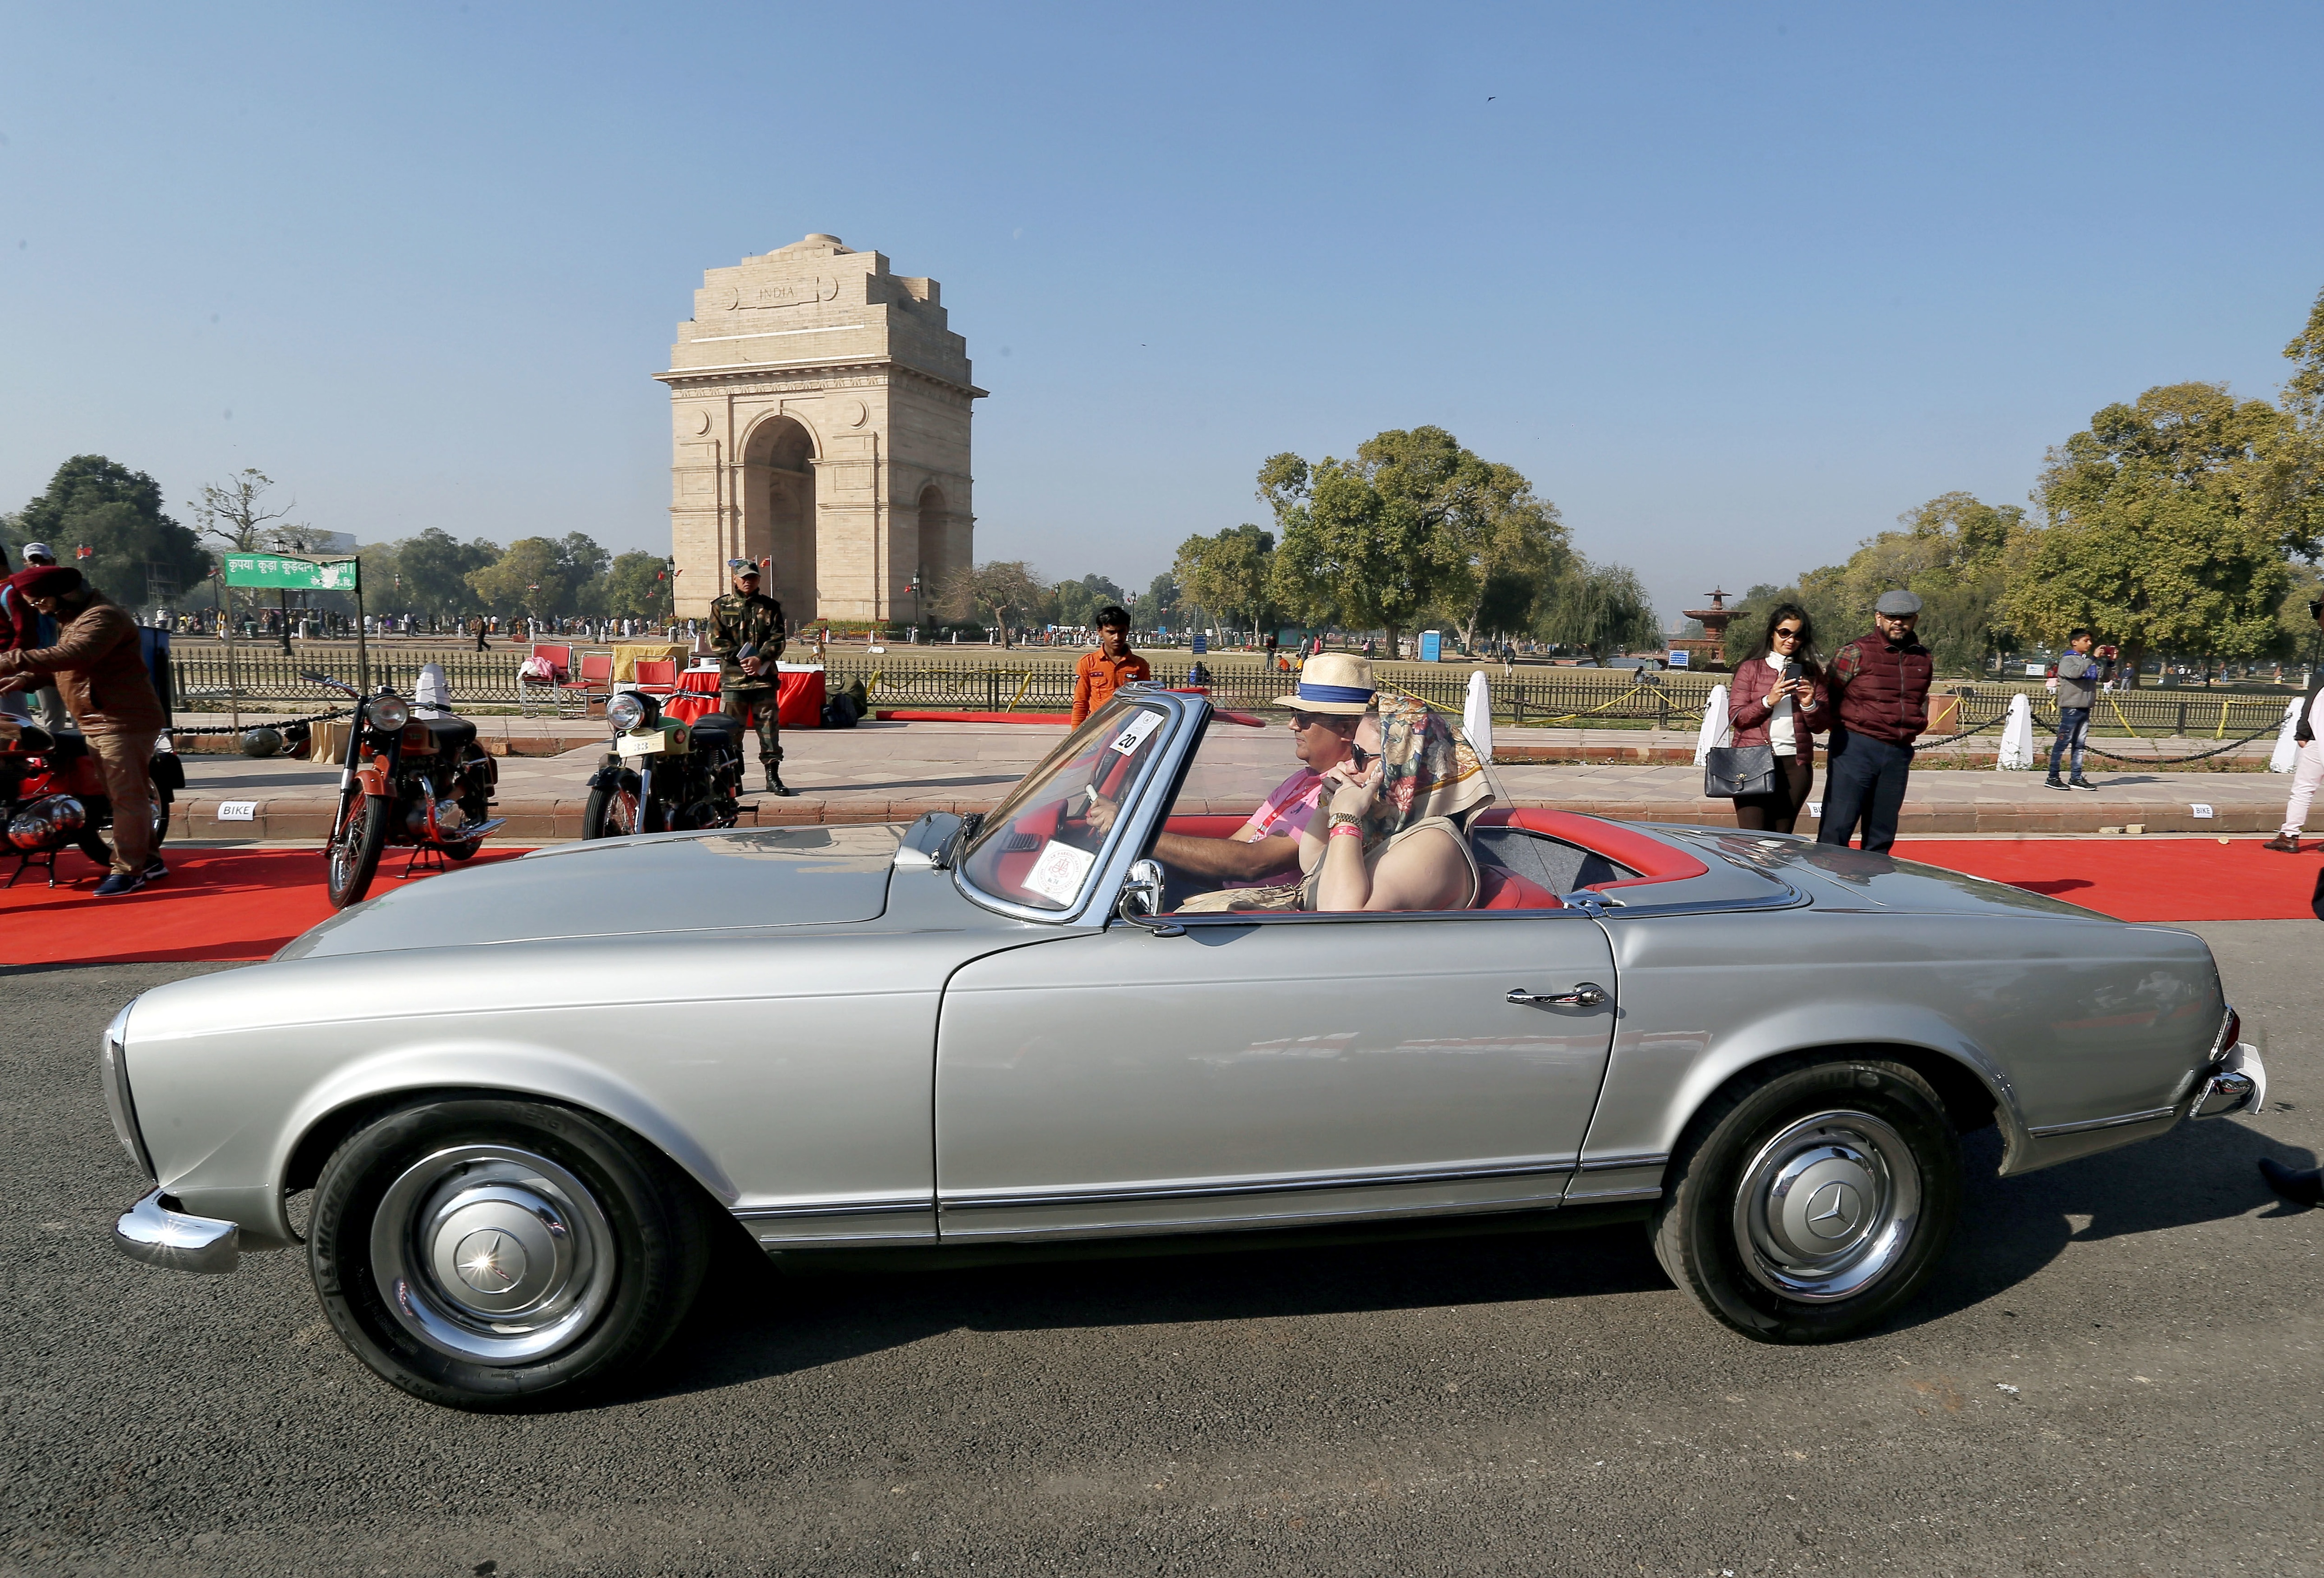 A participant drives the vintage car during the 21 Gun Salute International Vintage Car Rally, at India Gate, in New Delhi on Saturday. (ANI Photo)